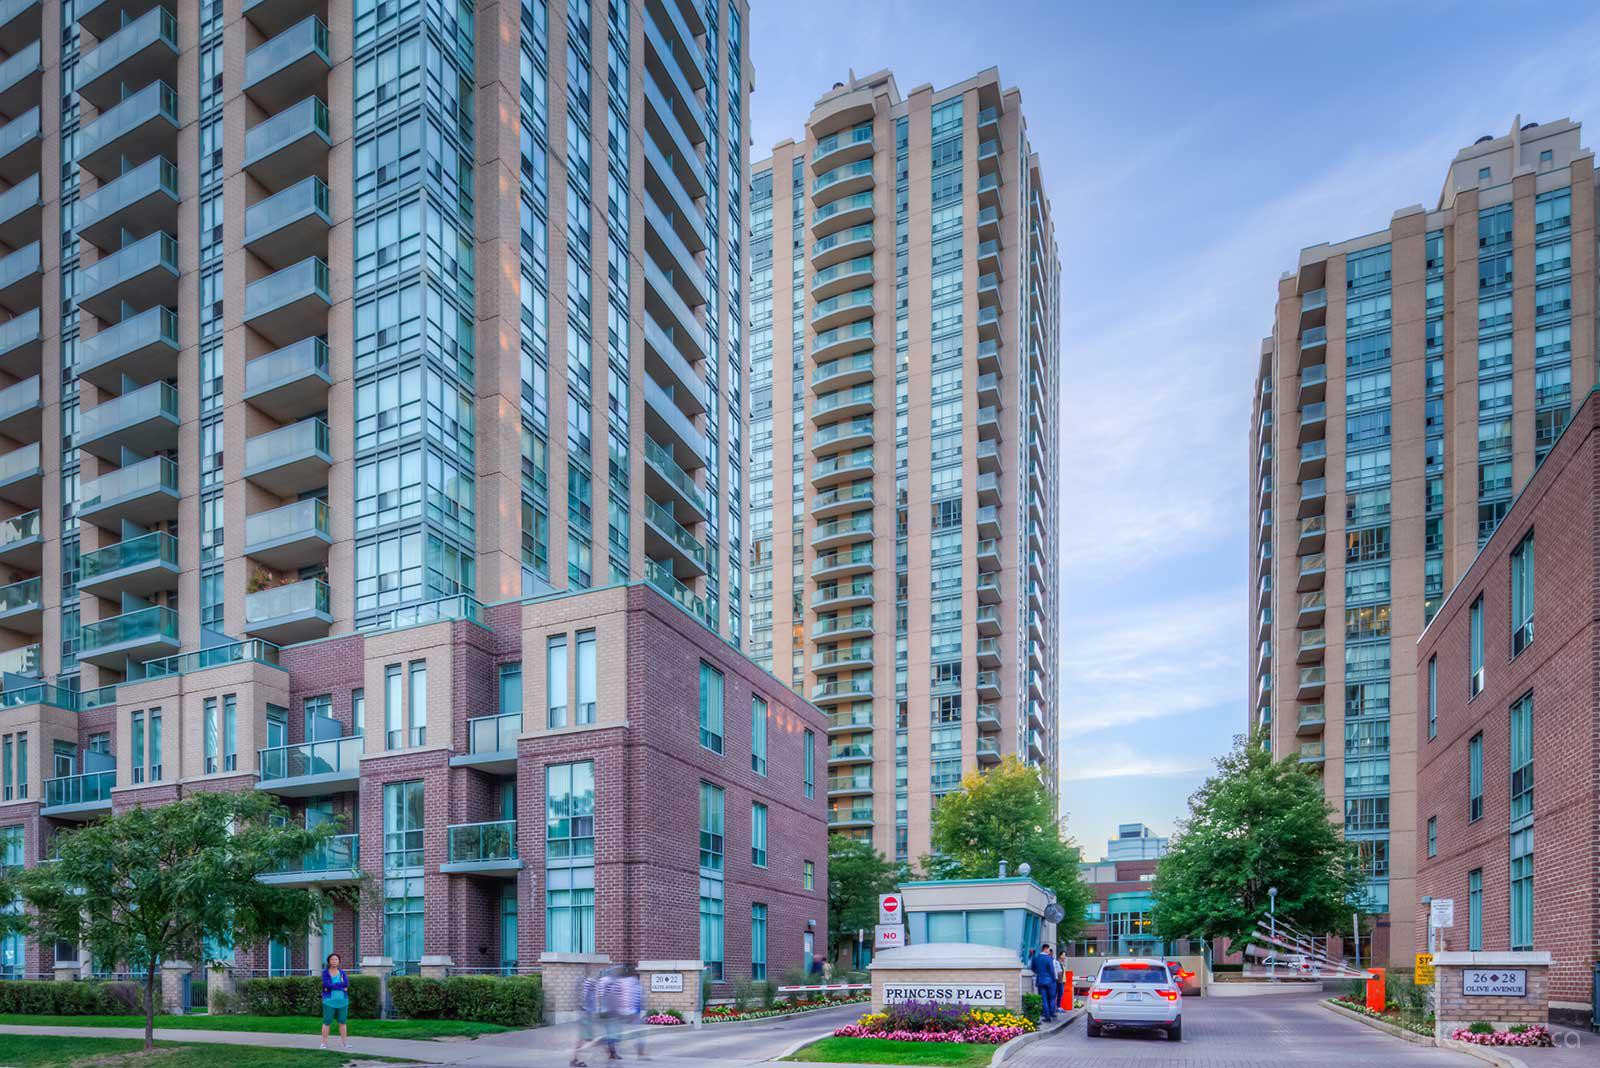 Princess Place Ⅰ at 26 Olive Ave, Toronto 1